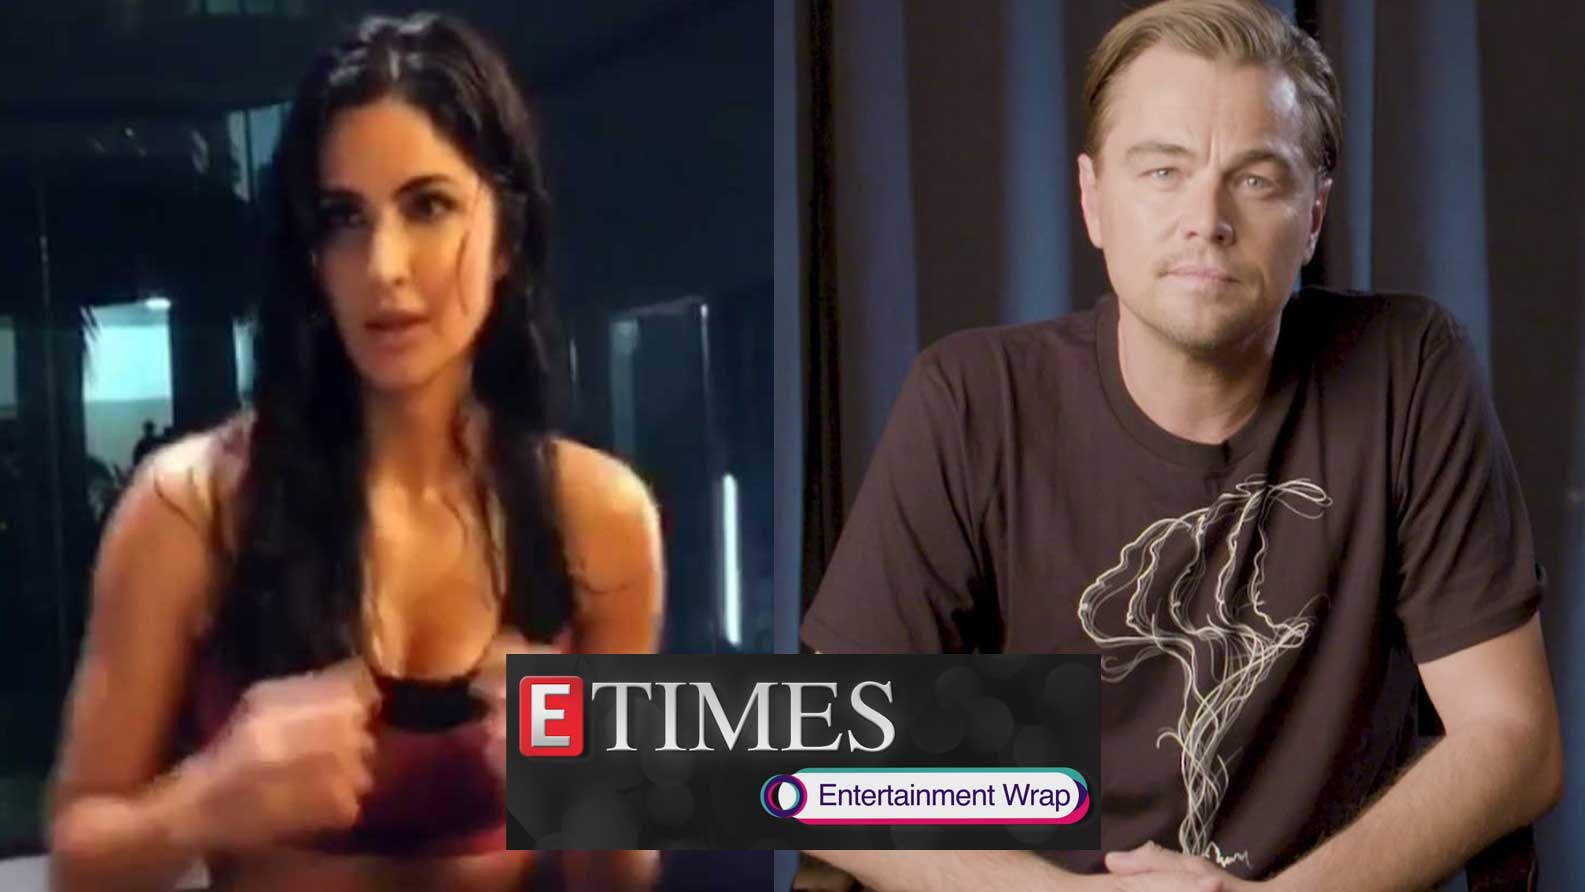 katrina-kaifs-latest-video-hints-new-collaboration-with-boxing-champion-flyod-mayweather-leonardo-dicaprio-expresses-concern-over-delhi-pollution-and-more